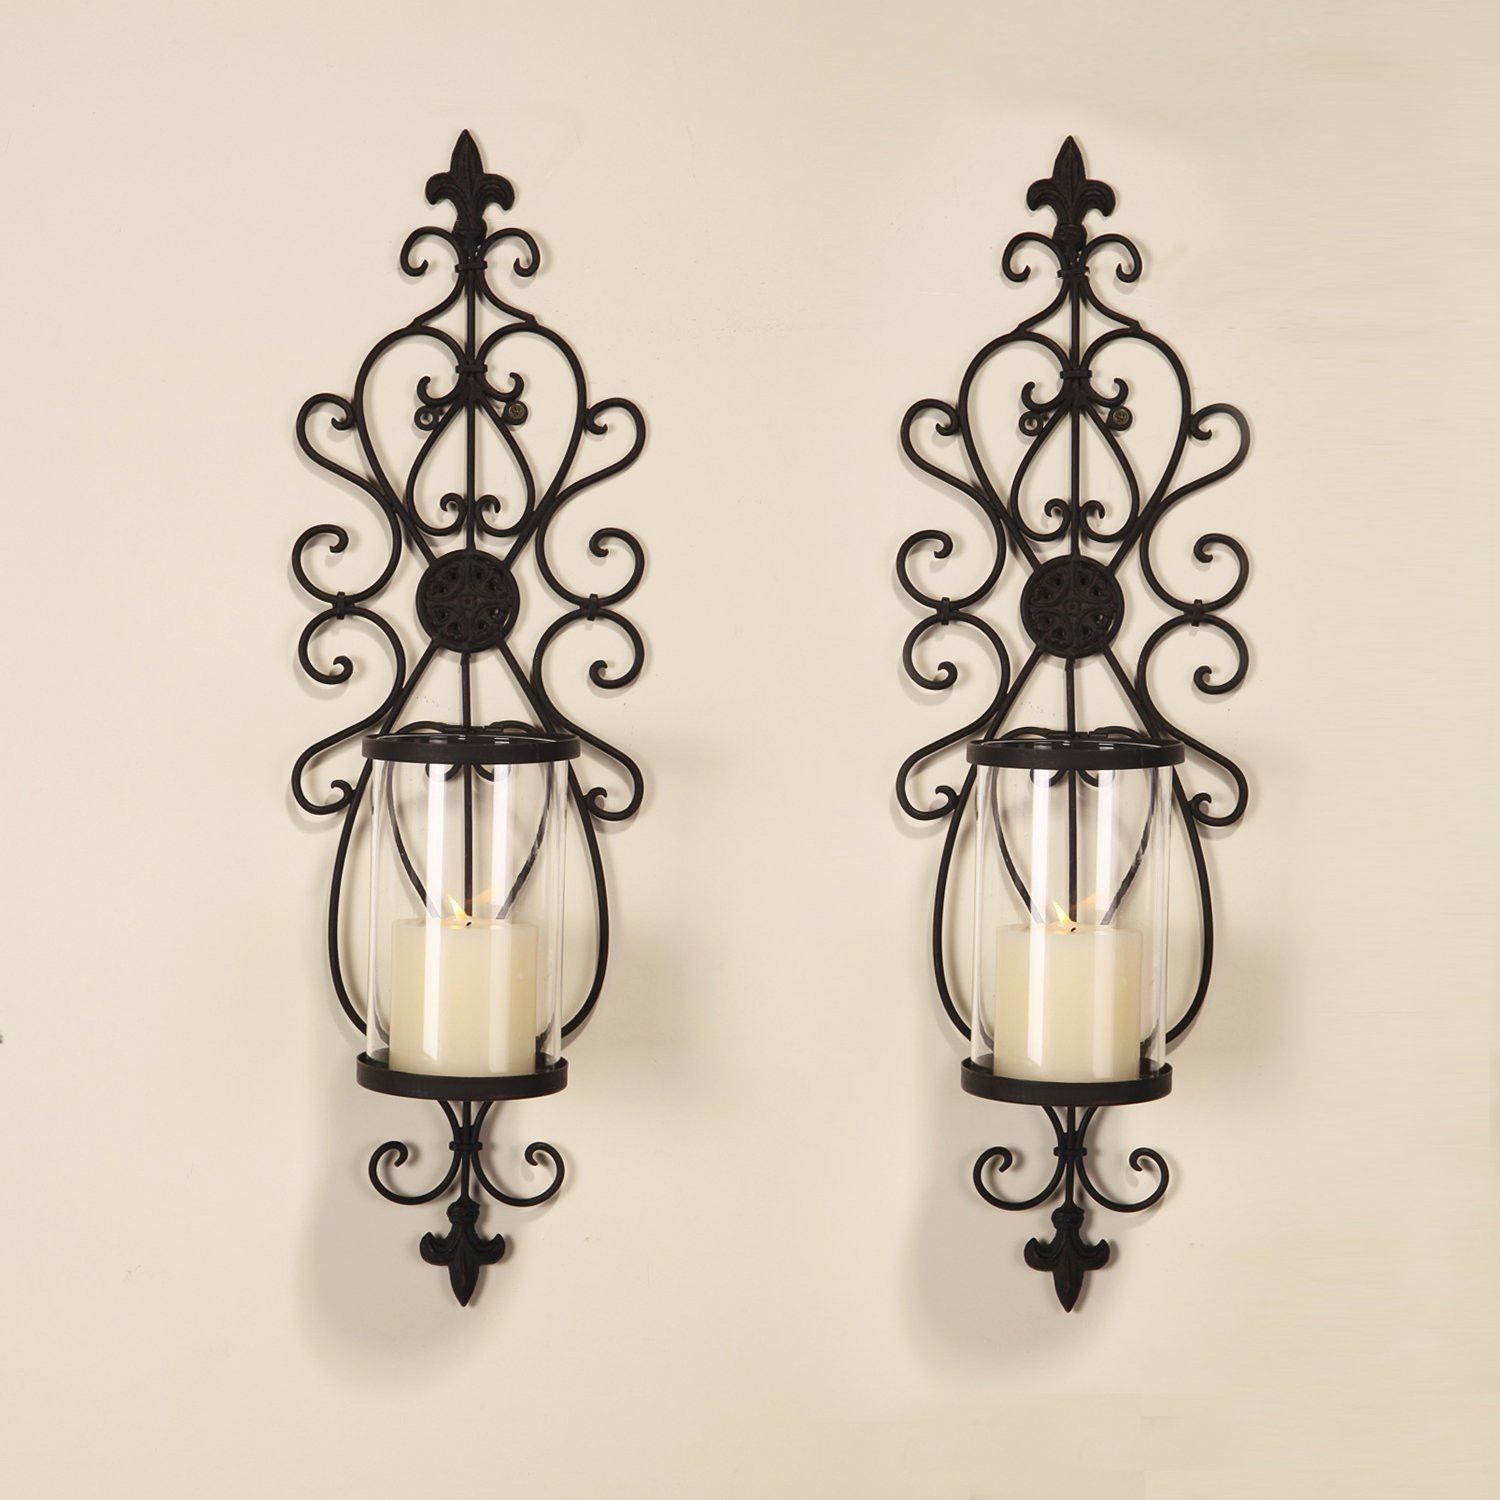 Adecotrading Iron Wall Sconce Candle Holder Set Of 2 Candle Wall Sconces Candle Holder Wall Sconce Wall Candle Holders